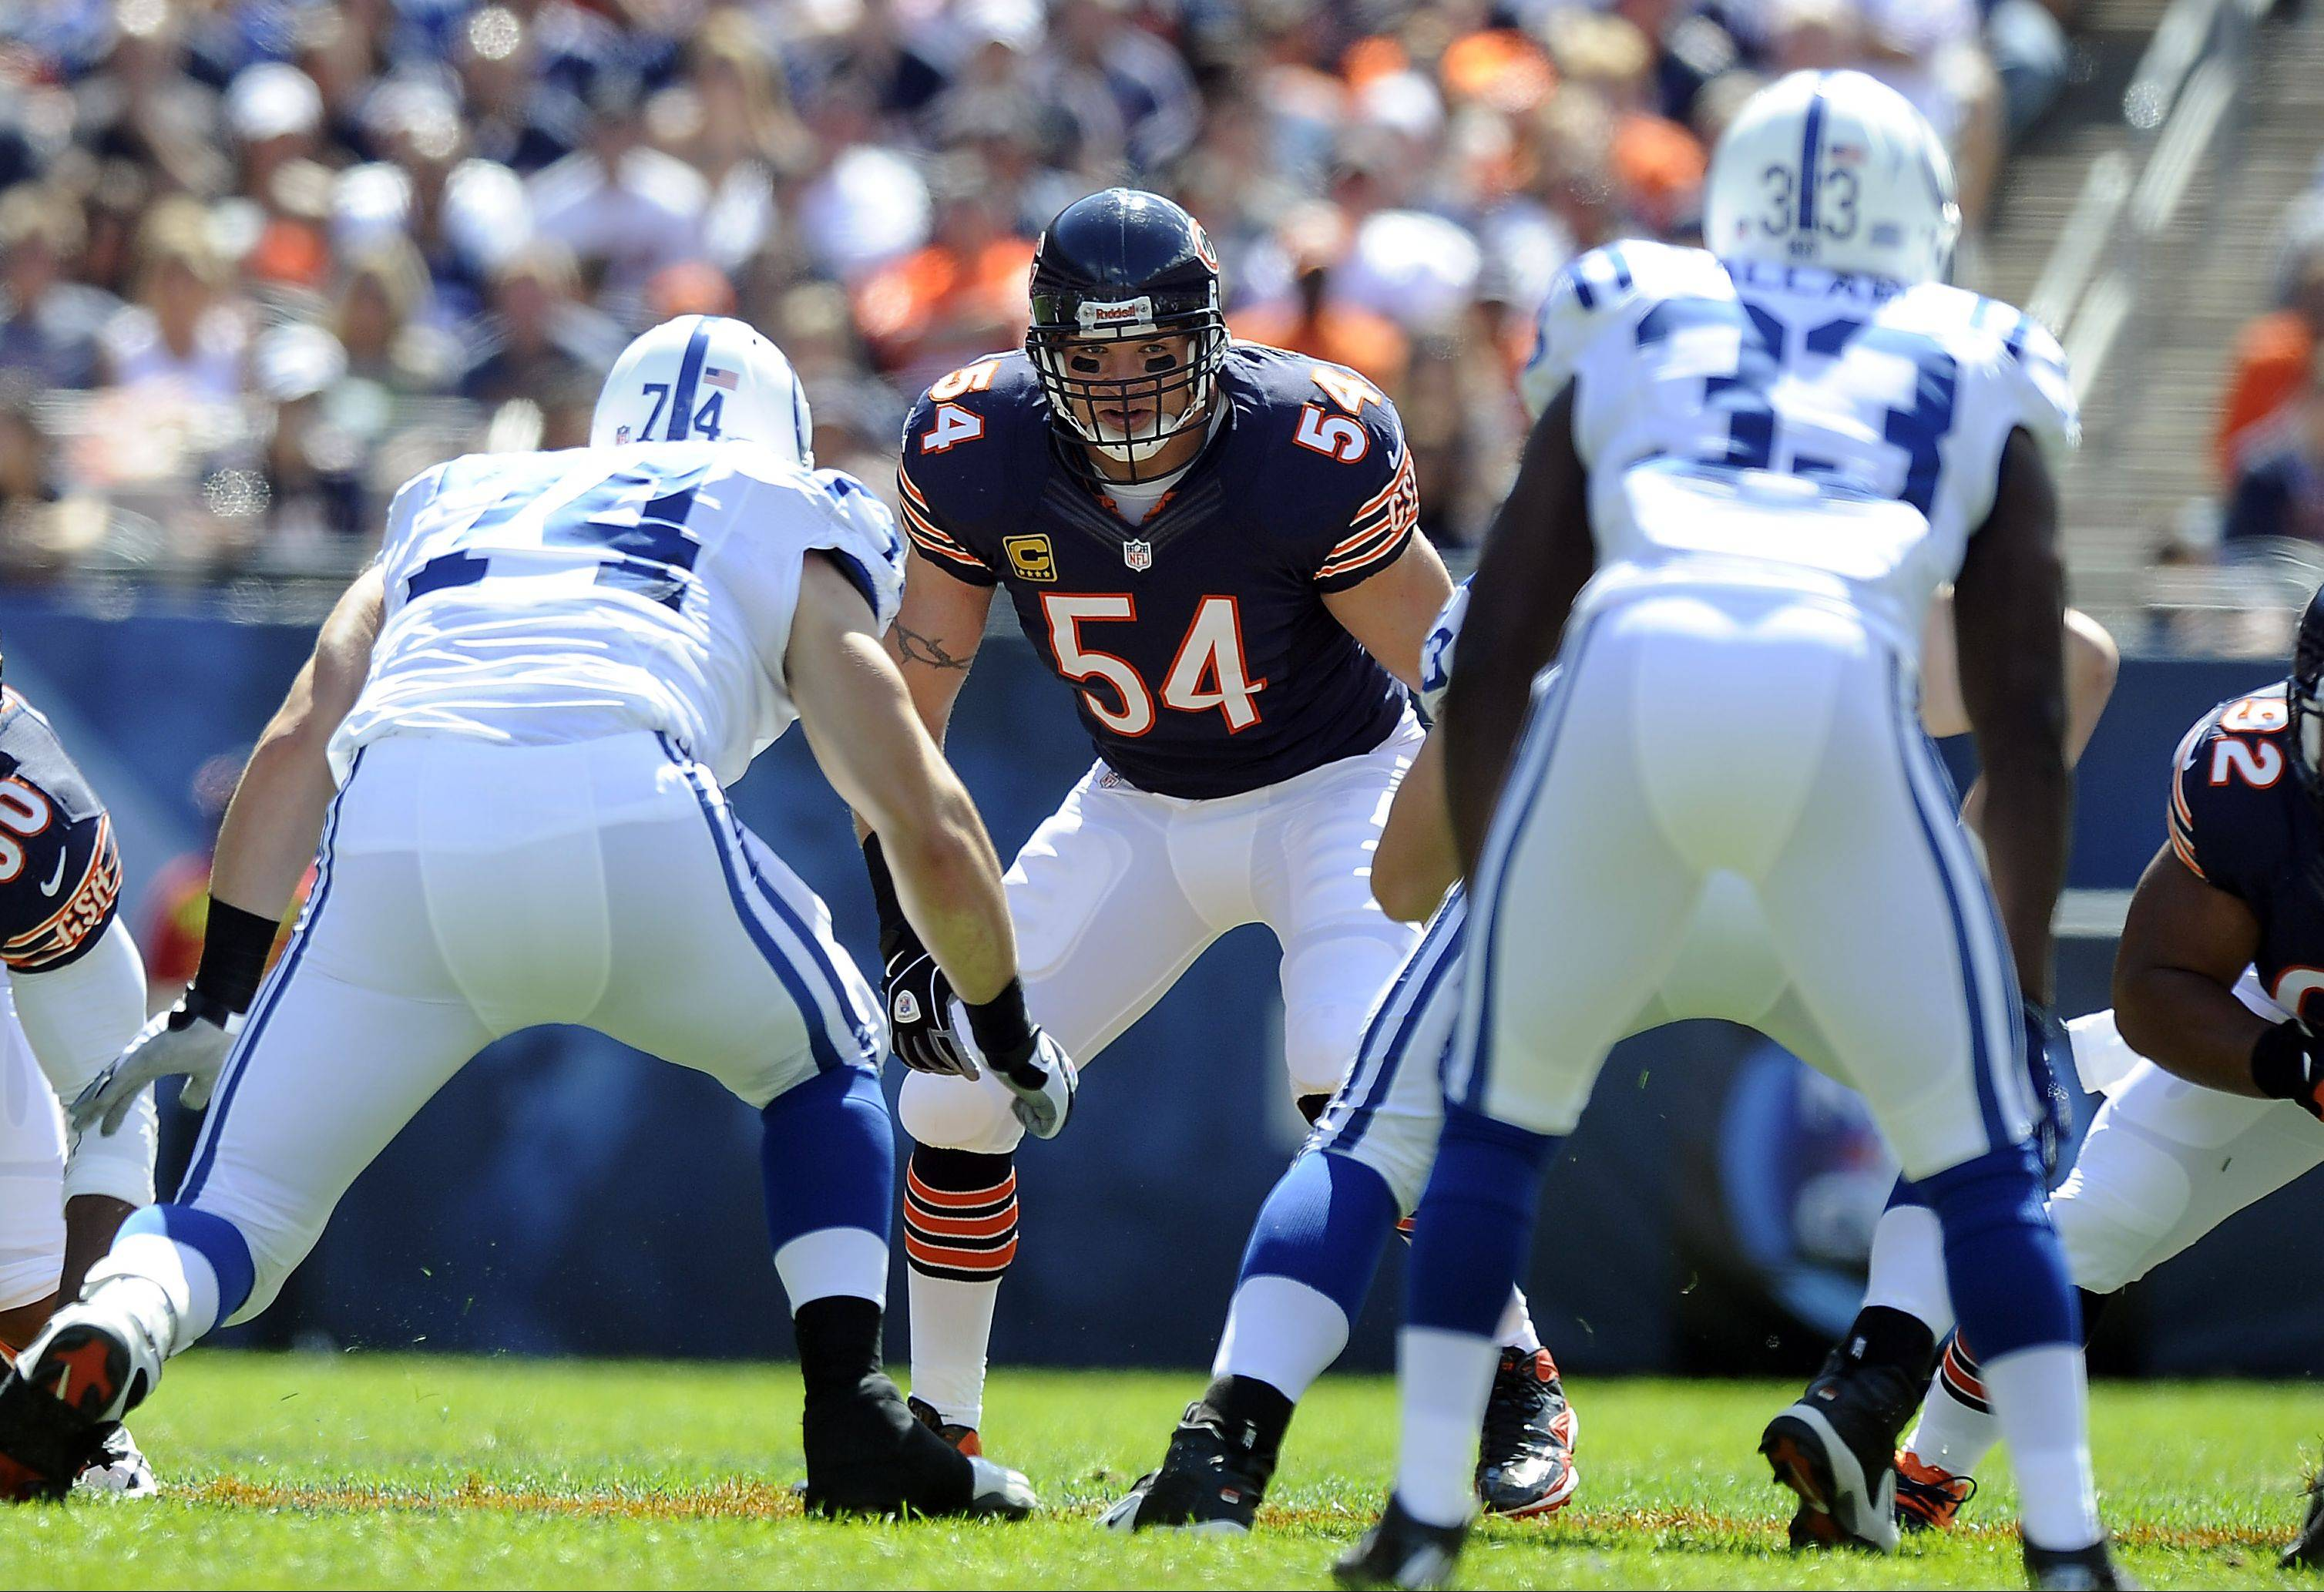 Bears middle linebacker Brian Urlacher returned to action Sunday against the Colts at Soldier Field, but he only played in the first half.